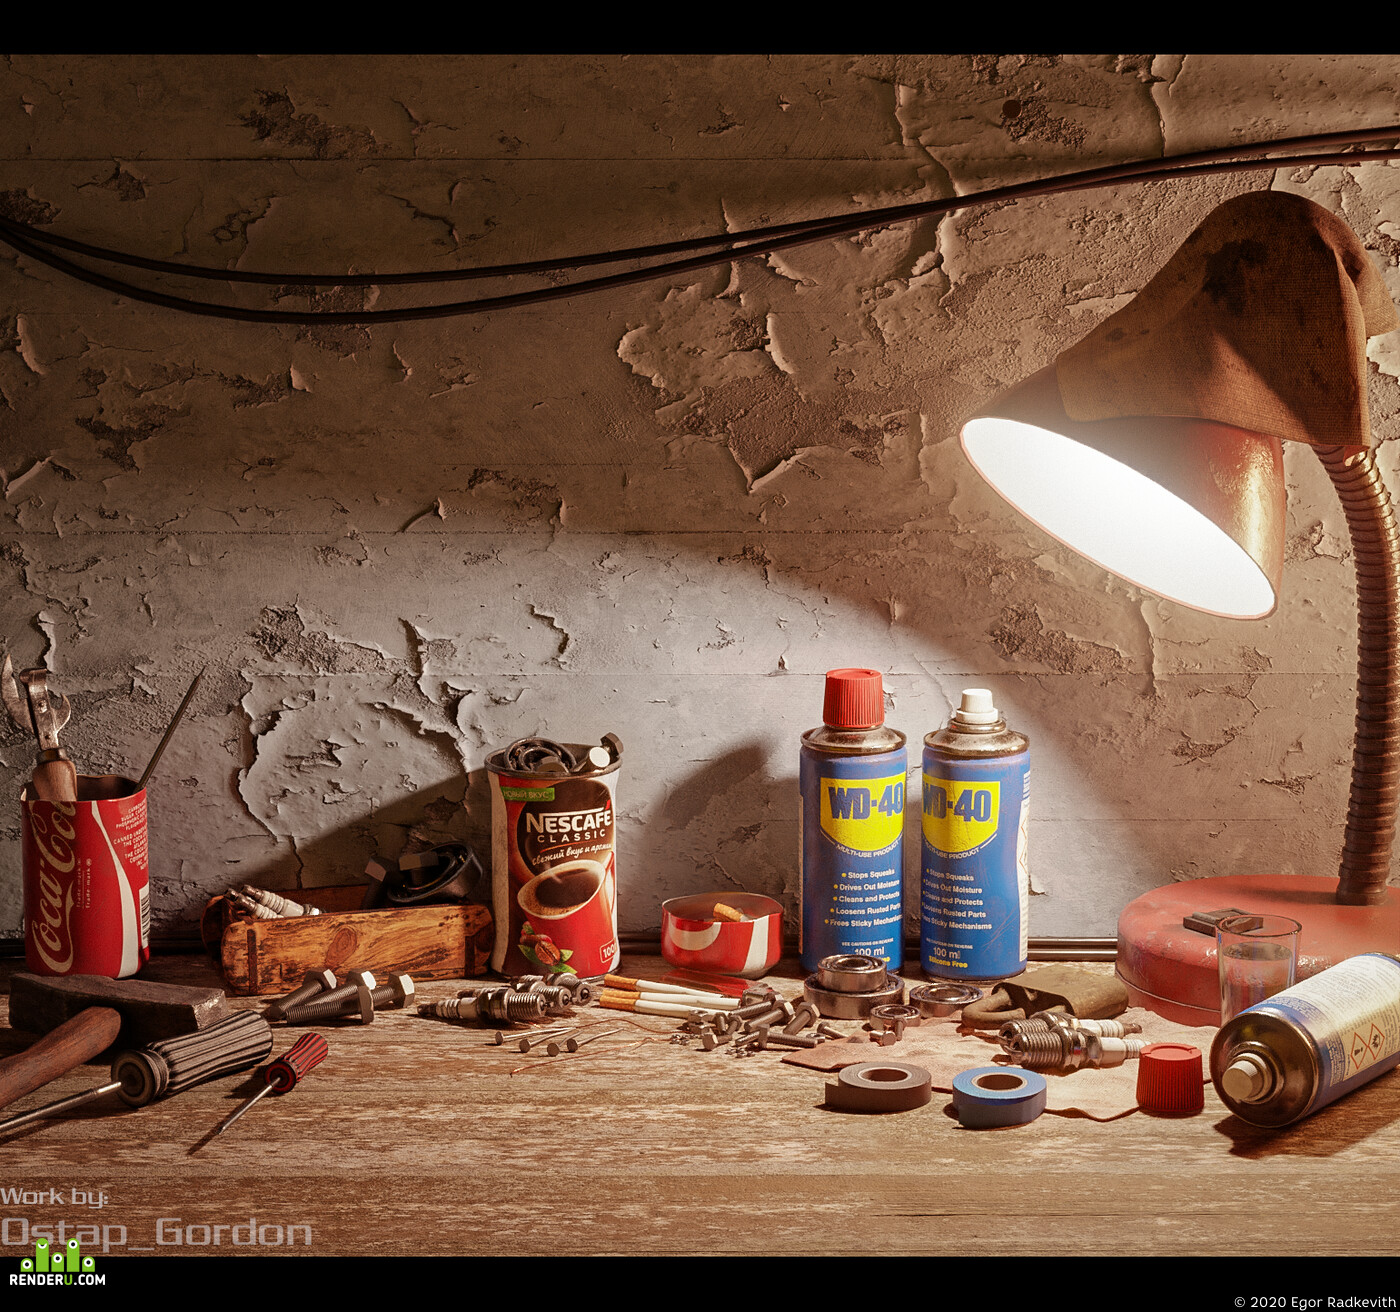 game, props, realism, WD40, garage, Russia, ussr, Game Ready Asset, free, Blender